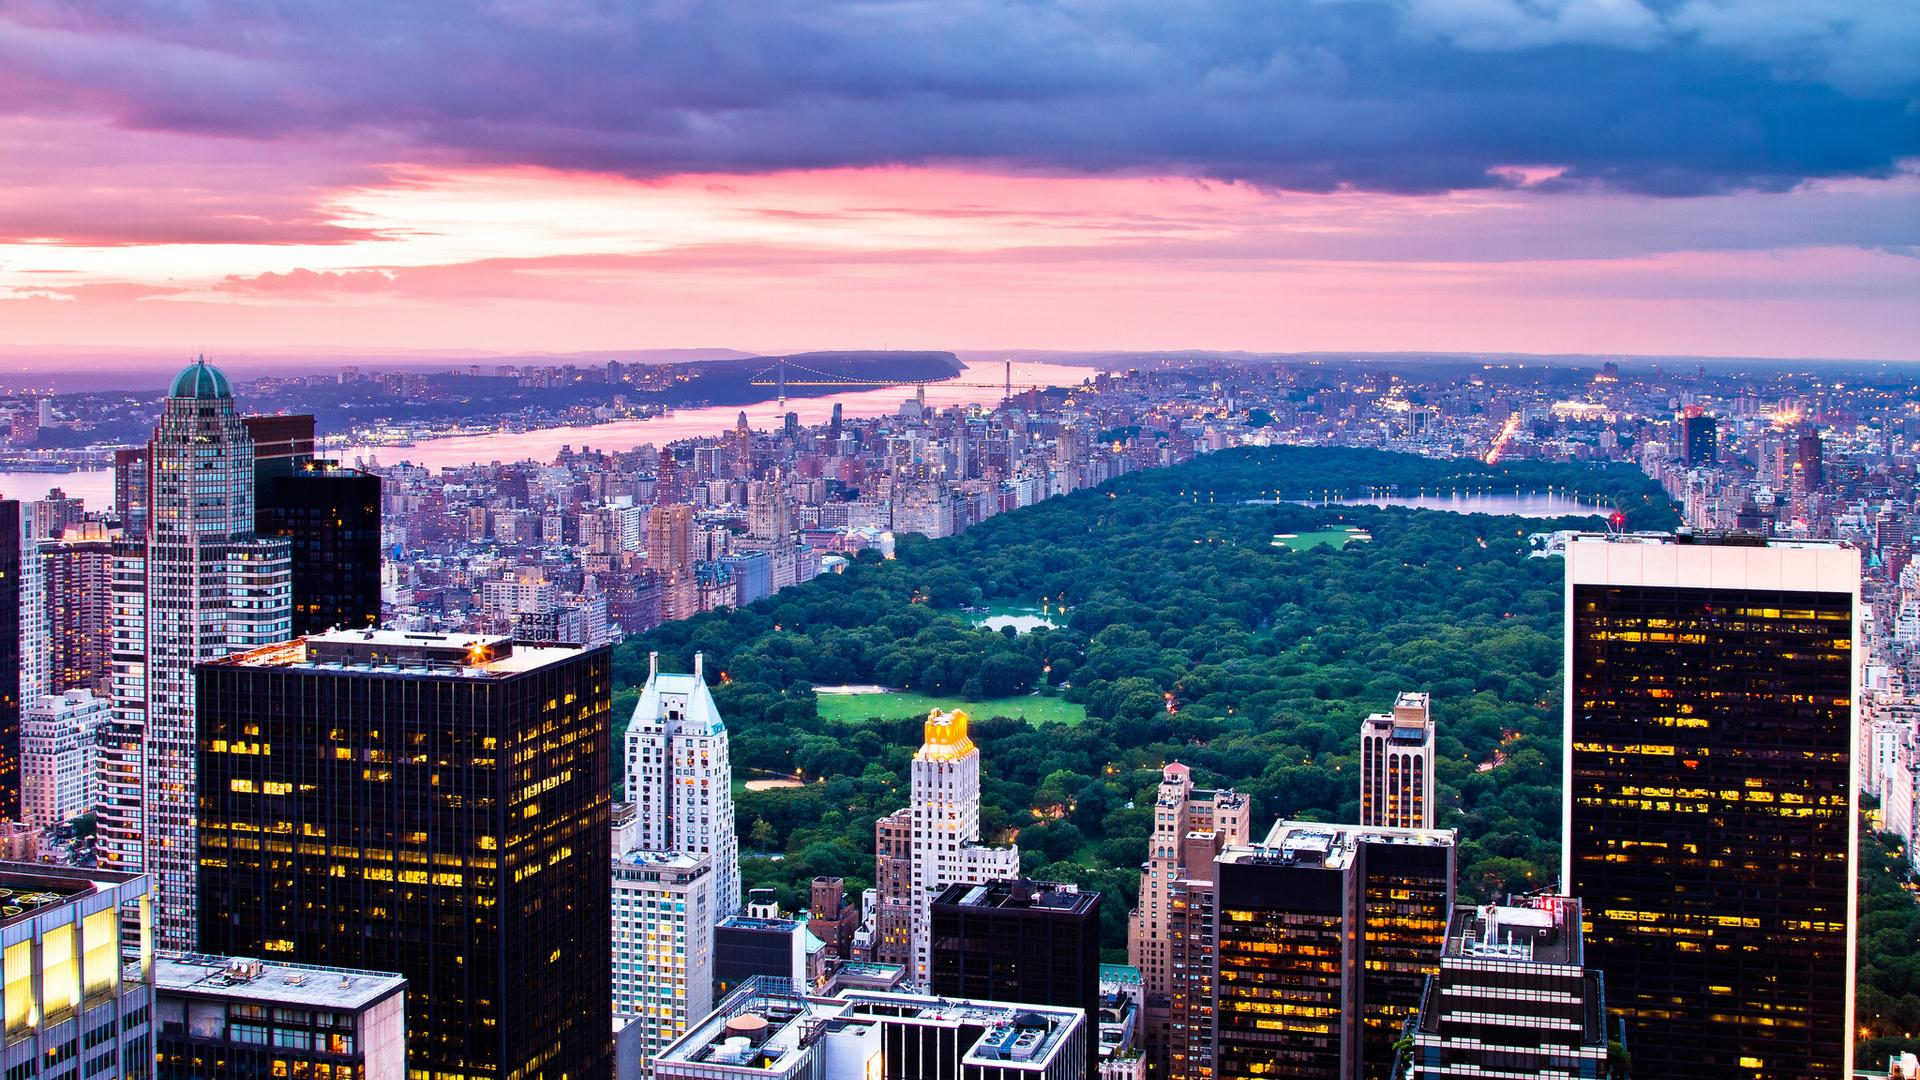 Central Park Wallpapers Top Free Central Park Backgrounds